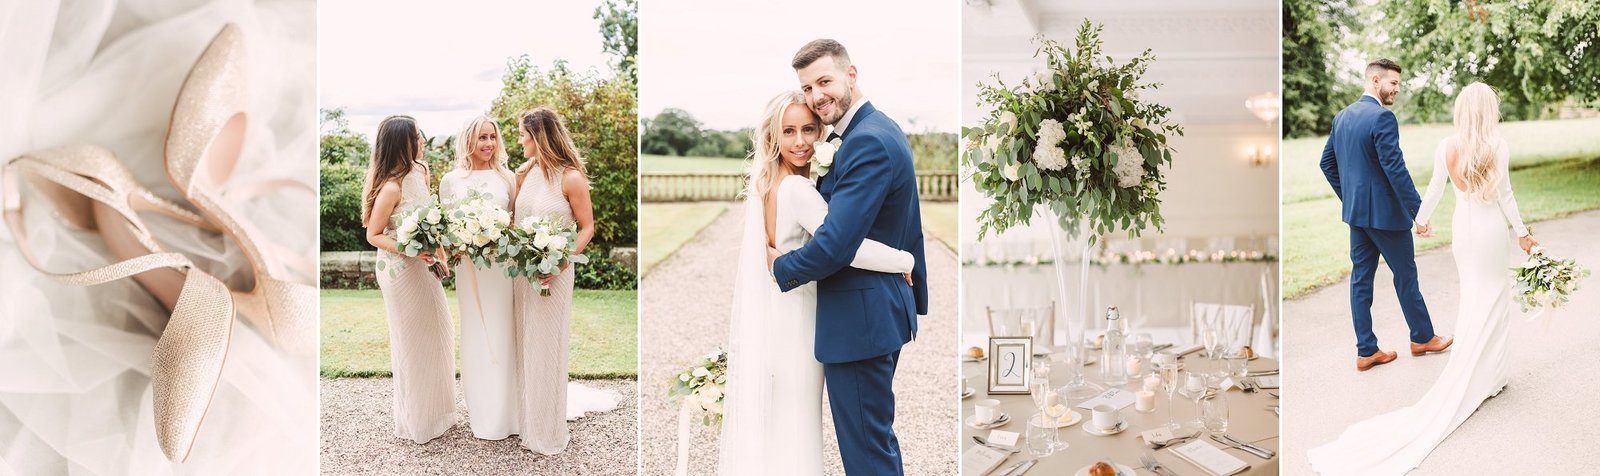 Tarporley Cheshire Wedding Photographer | Christina Sarah Photography